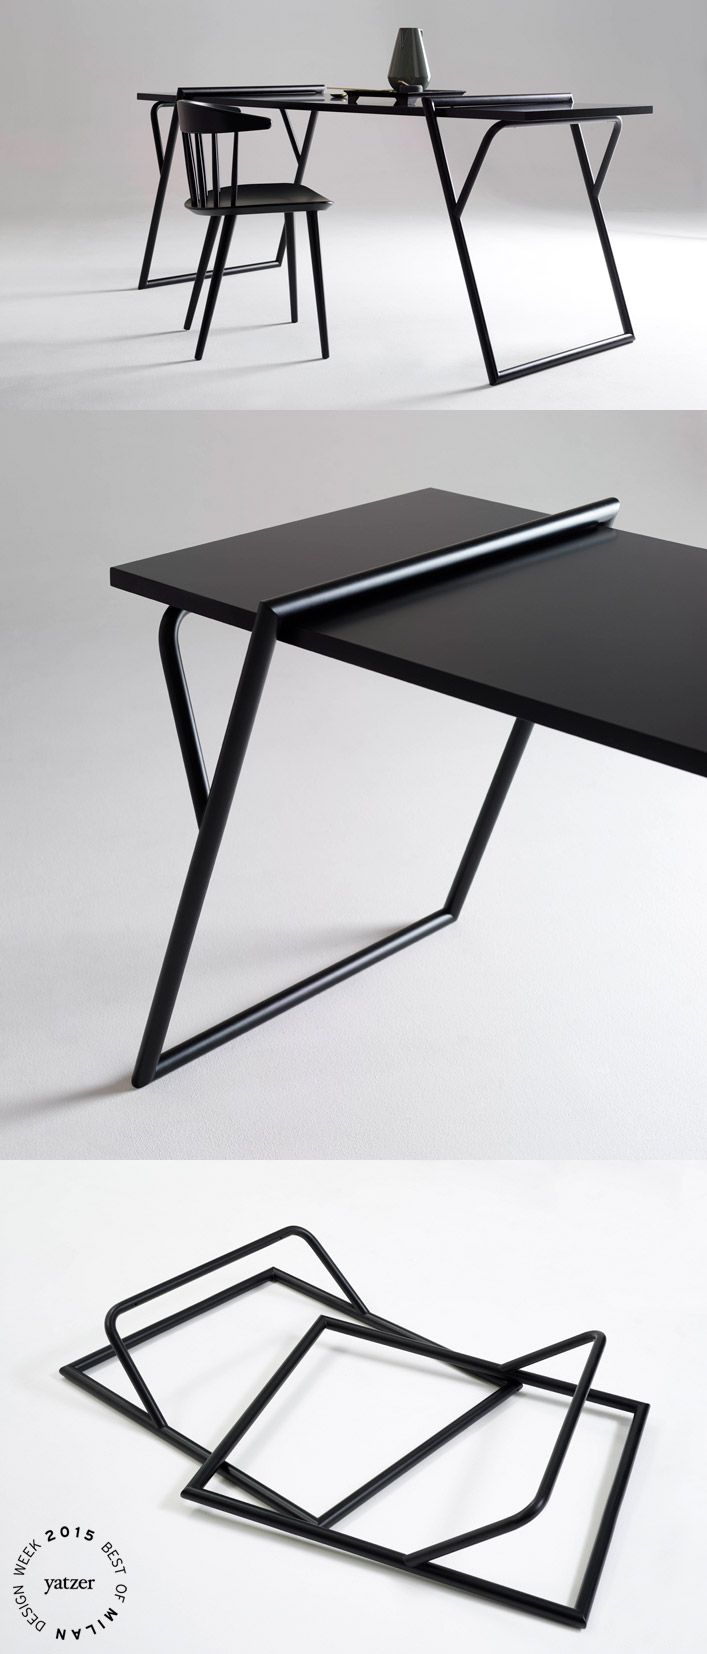 BEST OF MILAN DESIGN WEEK 2015 | Quadra by Luis Arrivillaga. ''Legs'' with an invisible design, universally suitable for supporting any type of table top. http://www.yatzer.com/best-of-milan-design-week-2015